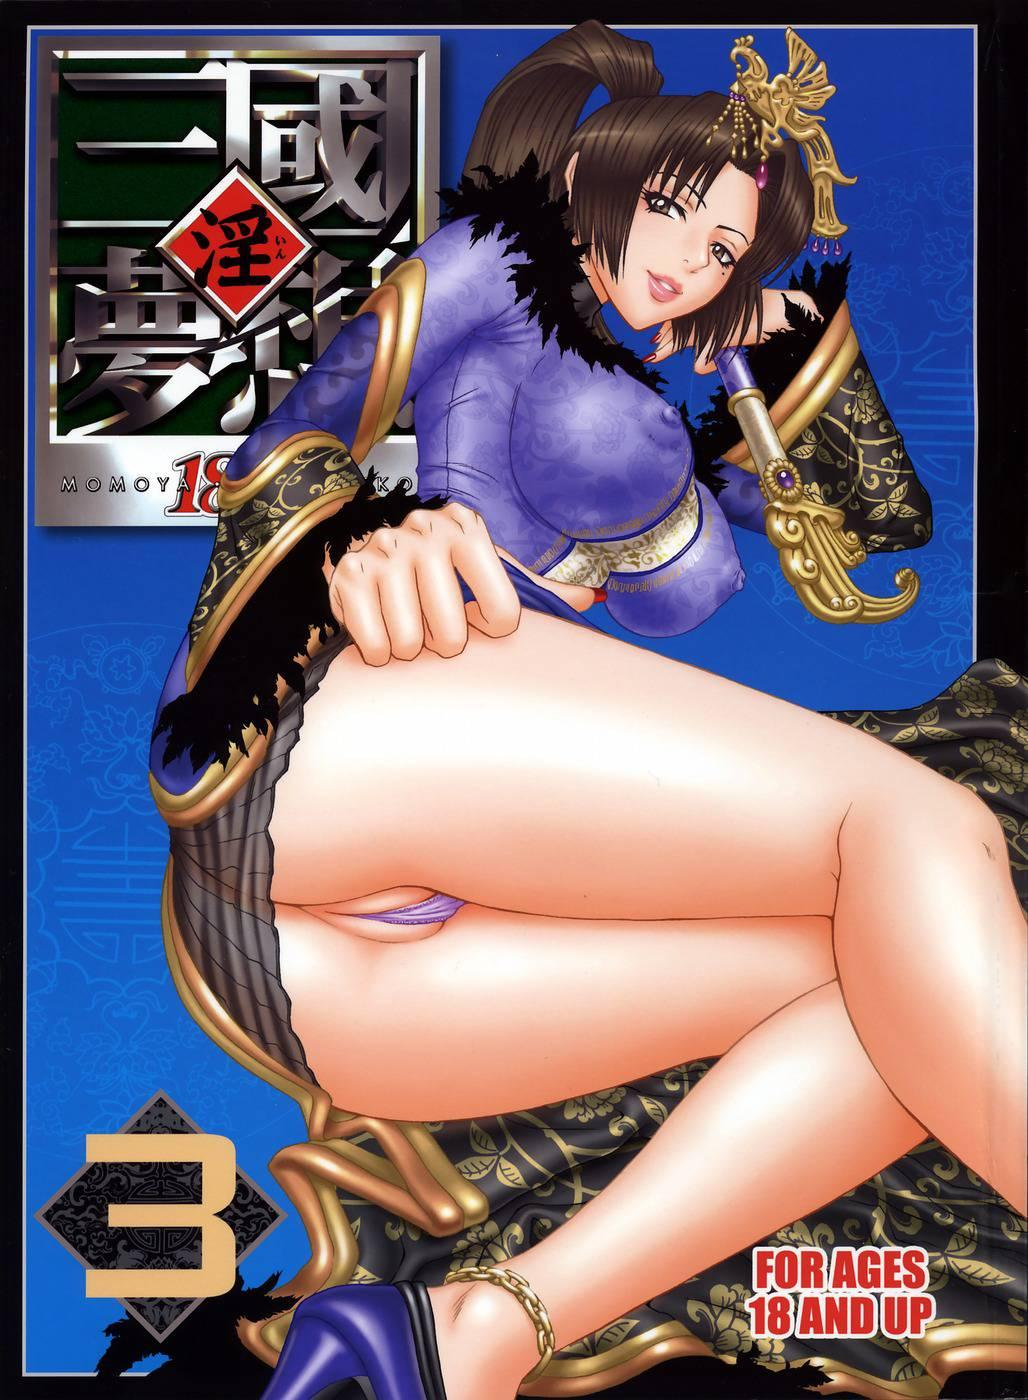 Dynasty warriors 3 hentai e-galleries nude girl